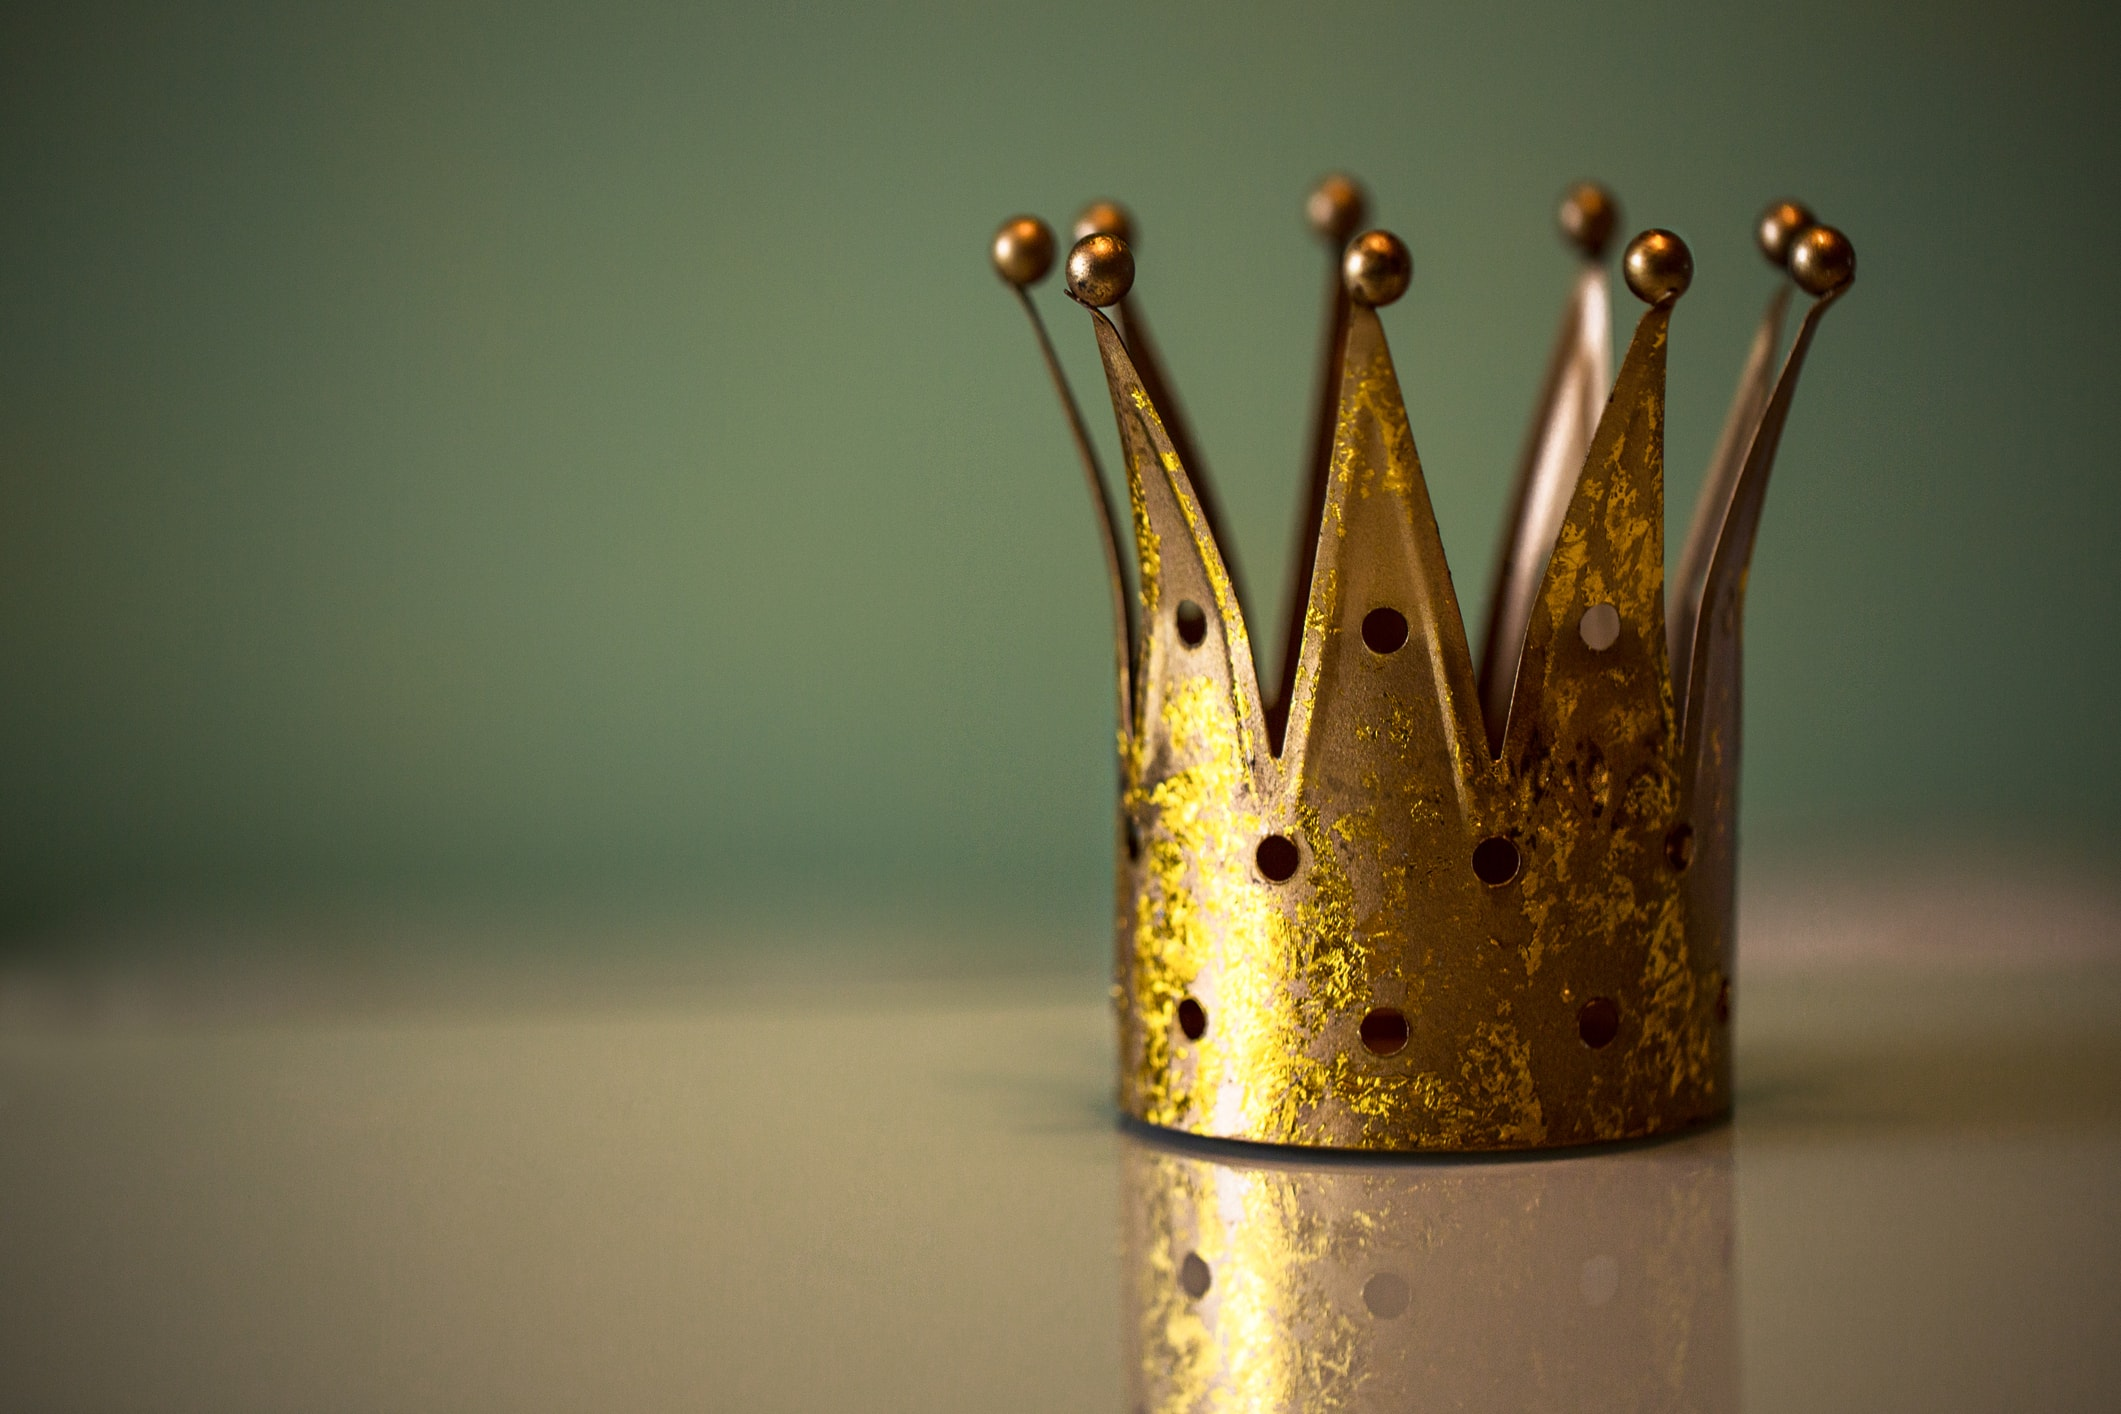 How To Maximize Revenue From Your Over-The-Top Content - content is king